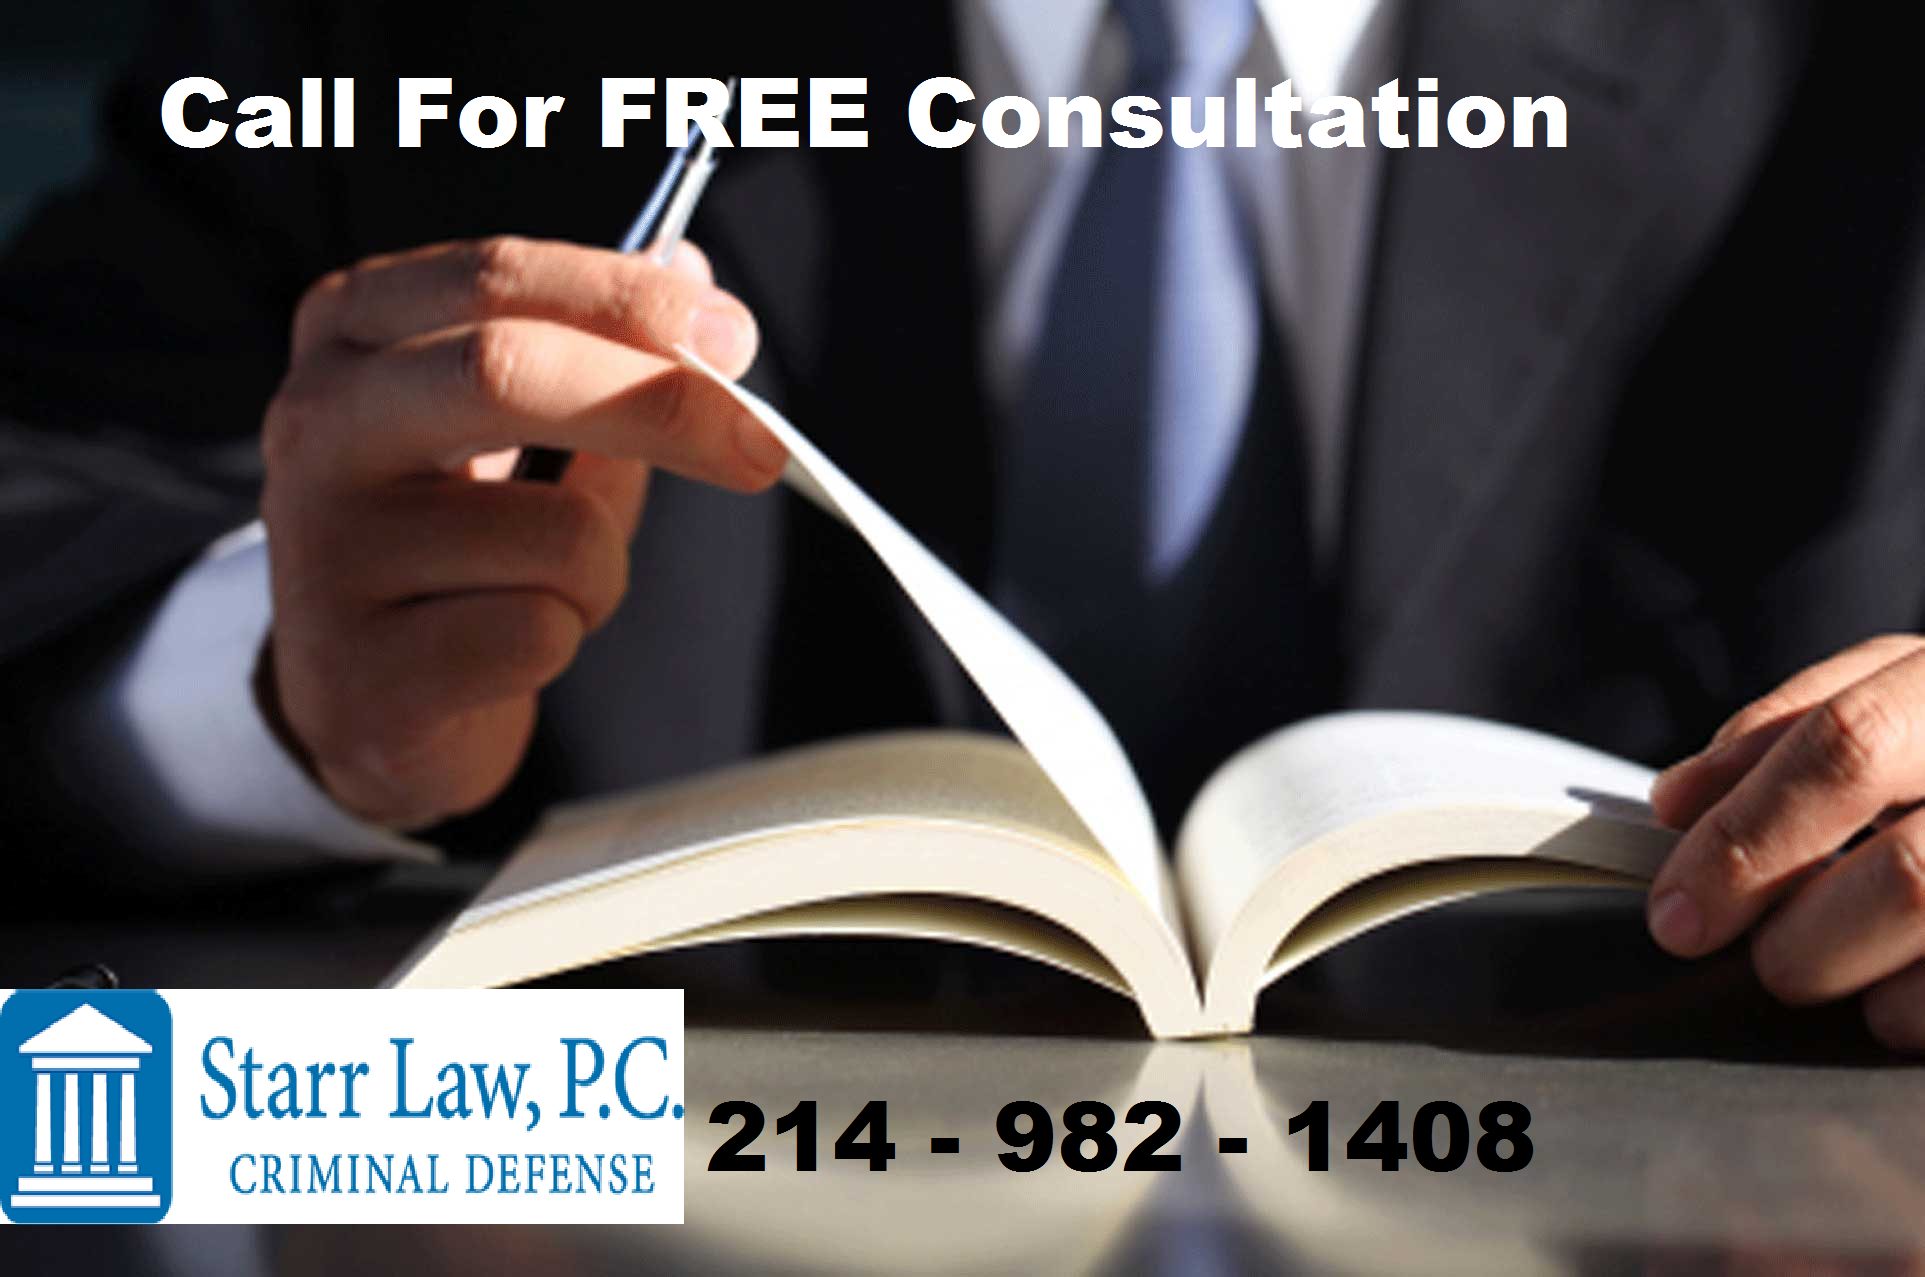 Plano TX Criminal Defense Lawyer